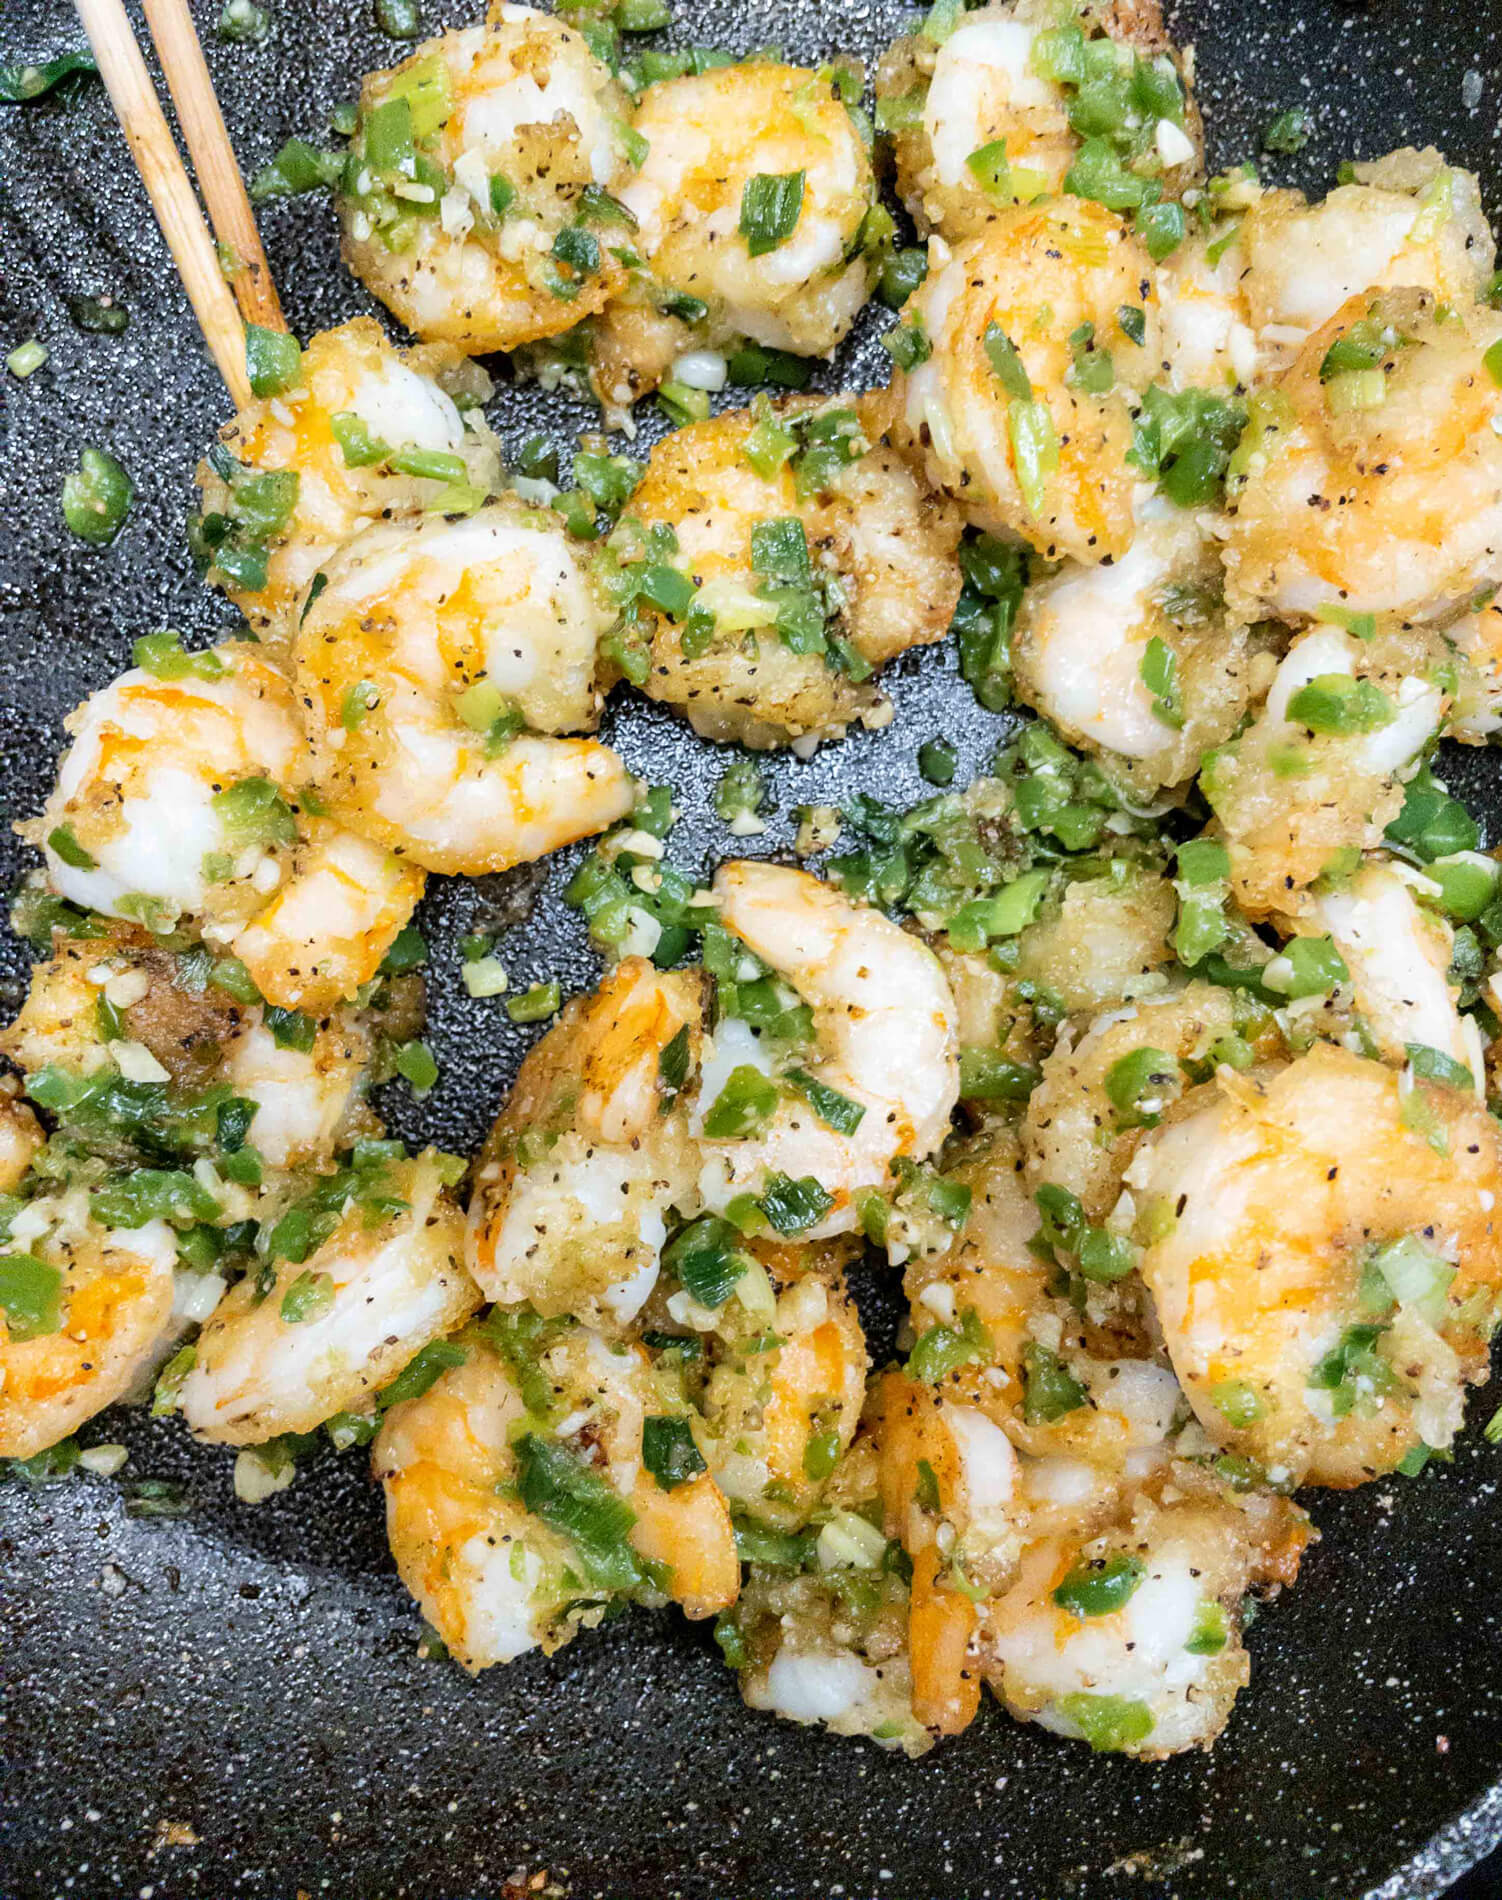 Shrimp are fried in avocado oil to a golden brown and tossed with peppers, garlic, green onion, salt, and pepper.